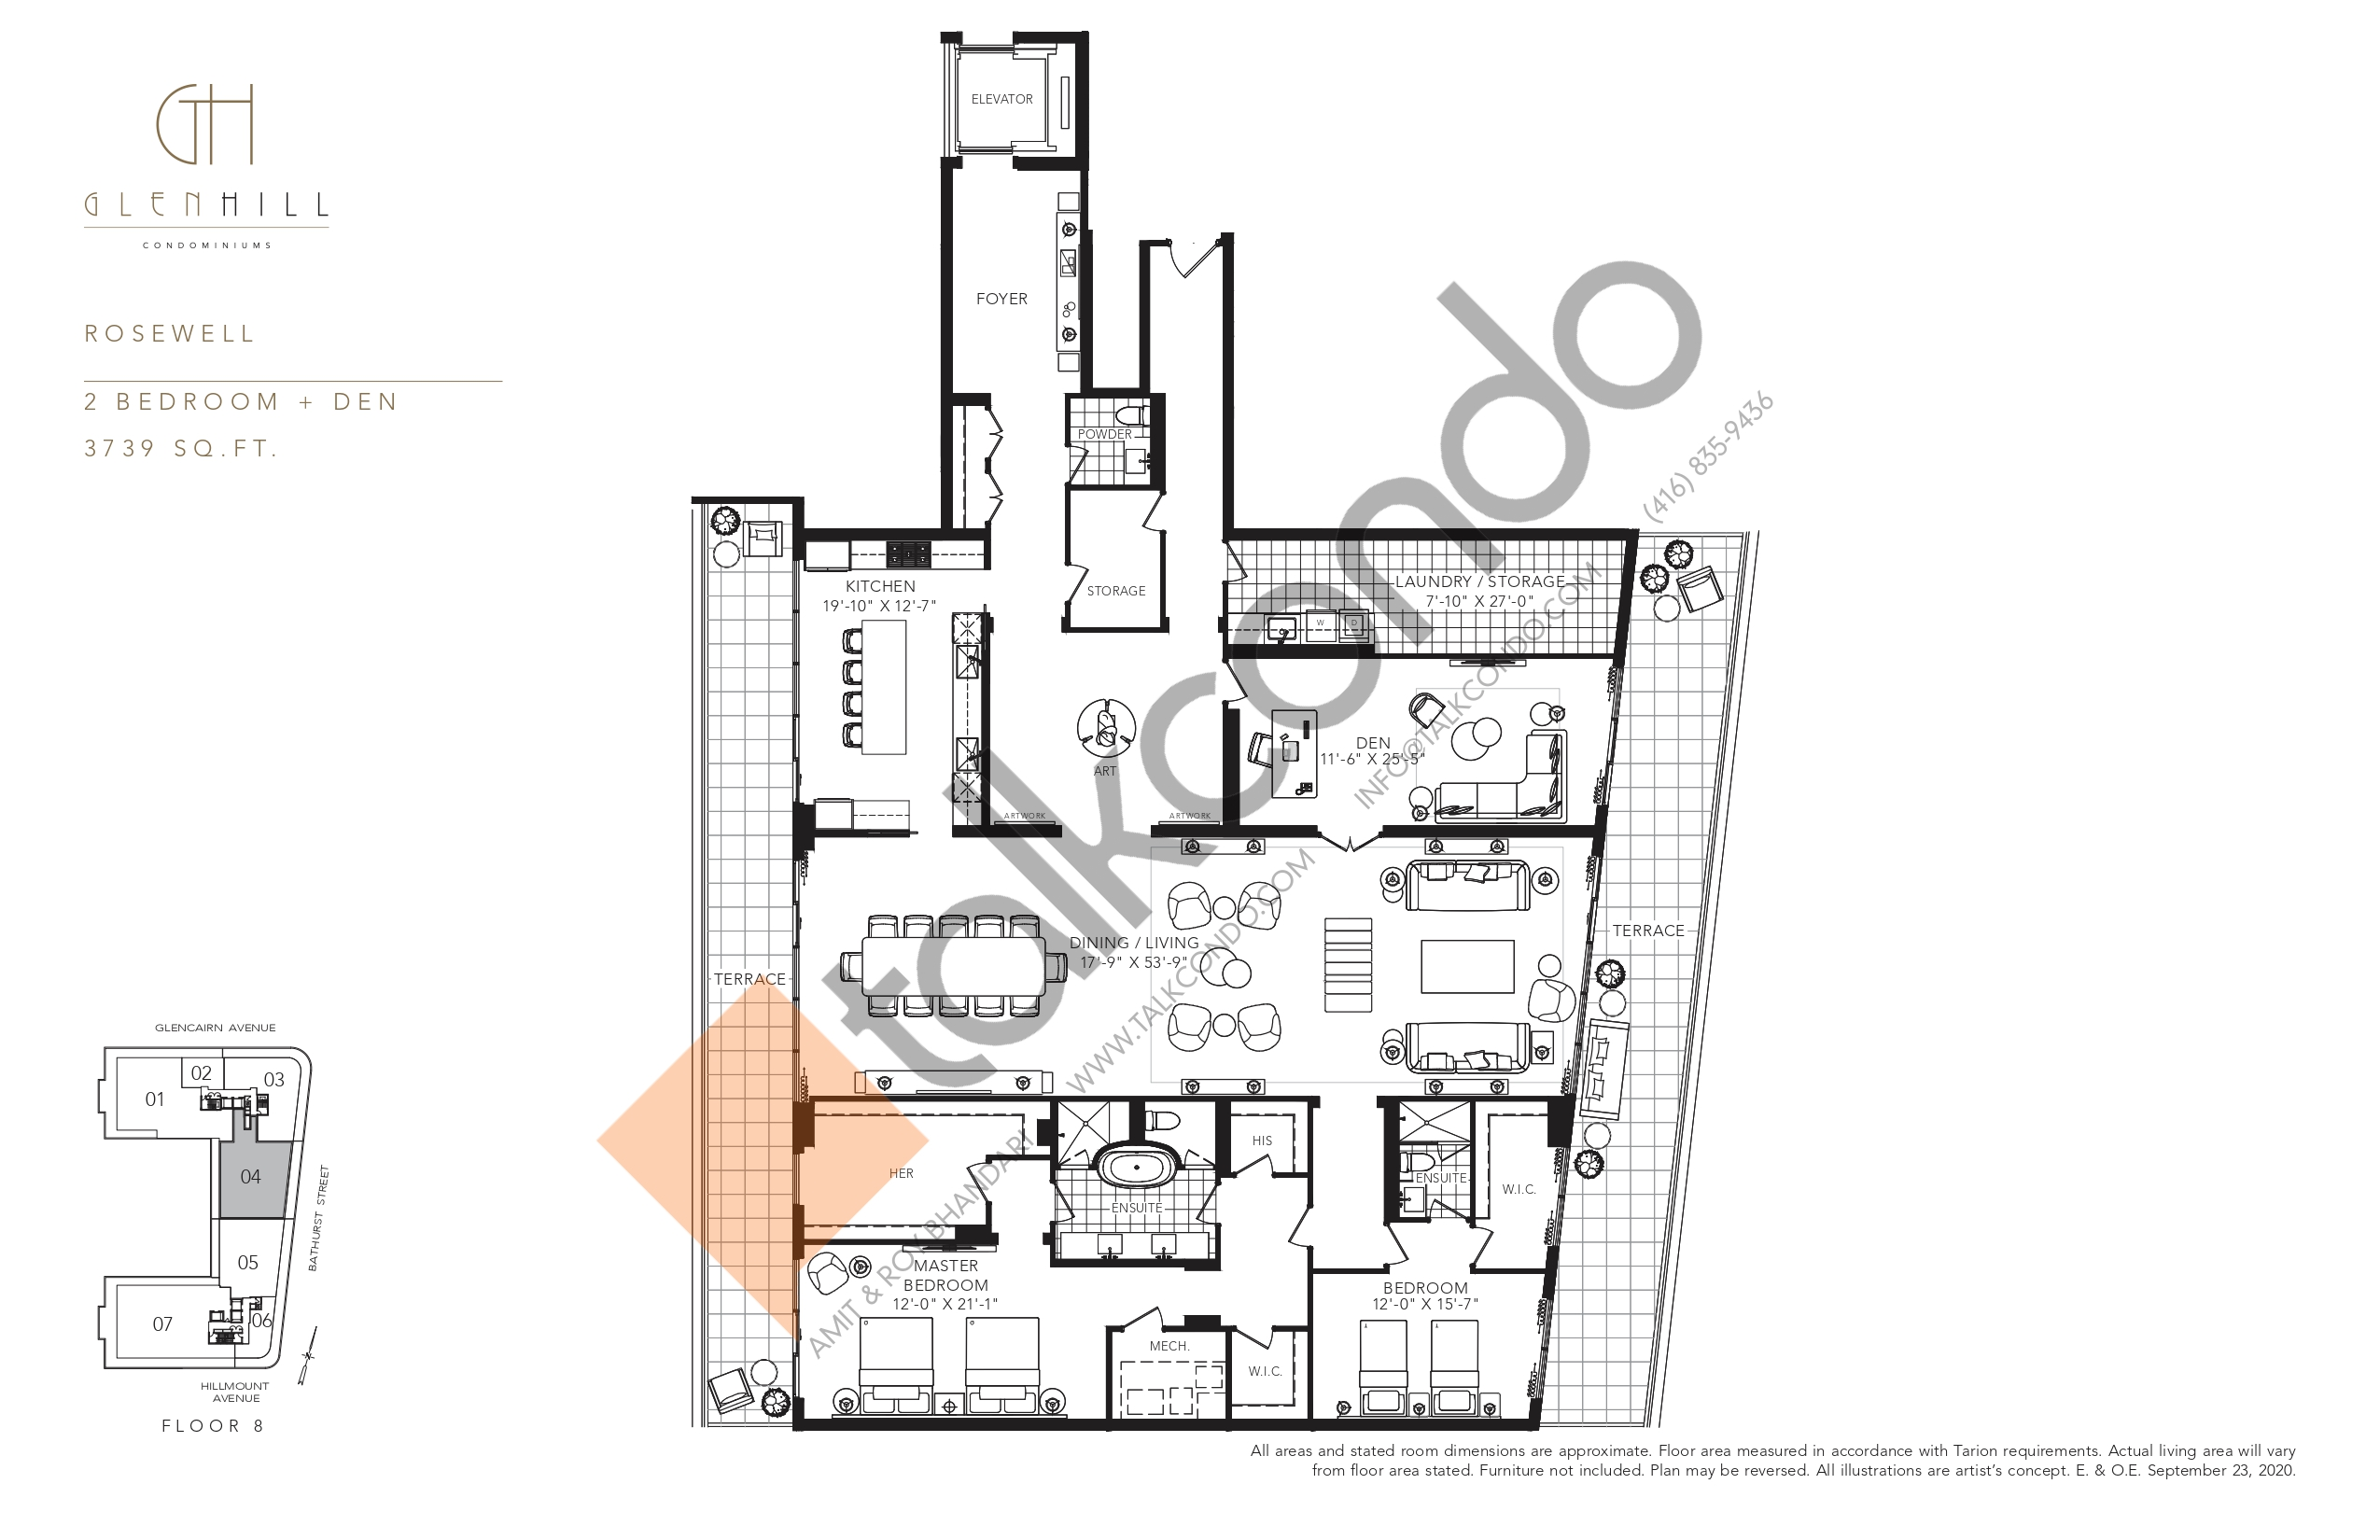 Rosewell Floor Plan at Glen Hill Condos - 3739 sq.ft